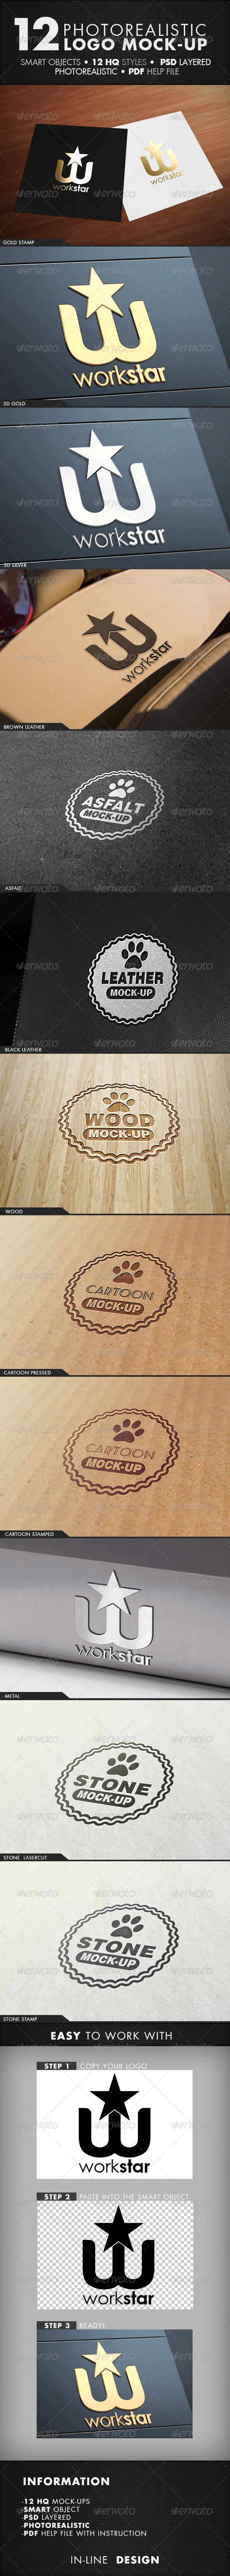 12 Photorealistic Logo Mock-Up / Set.1 - Logo Product Mock-Ups